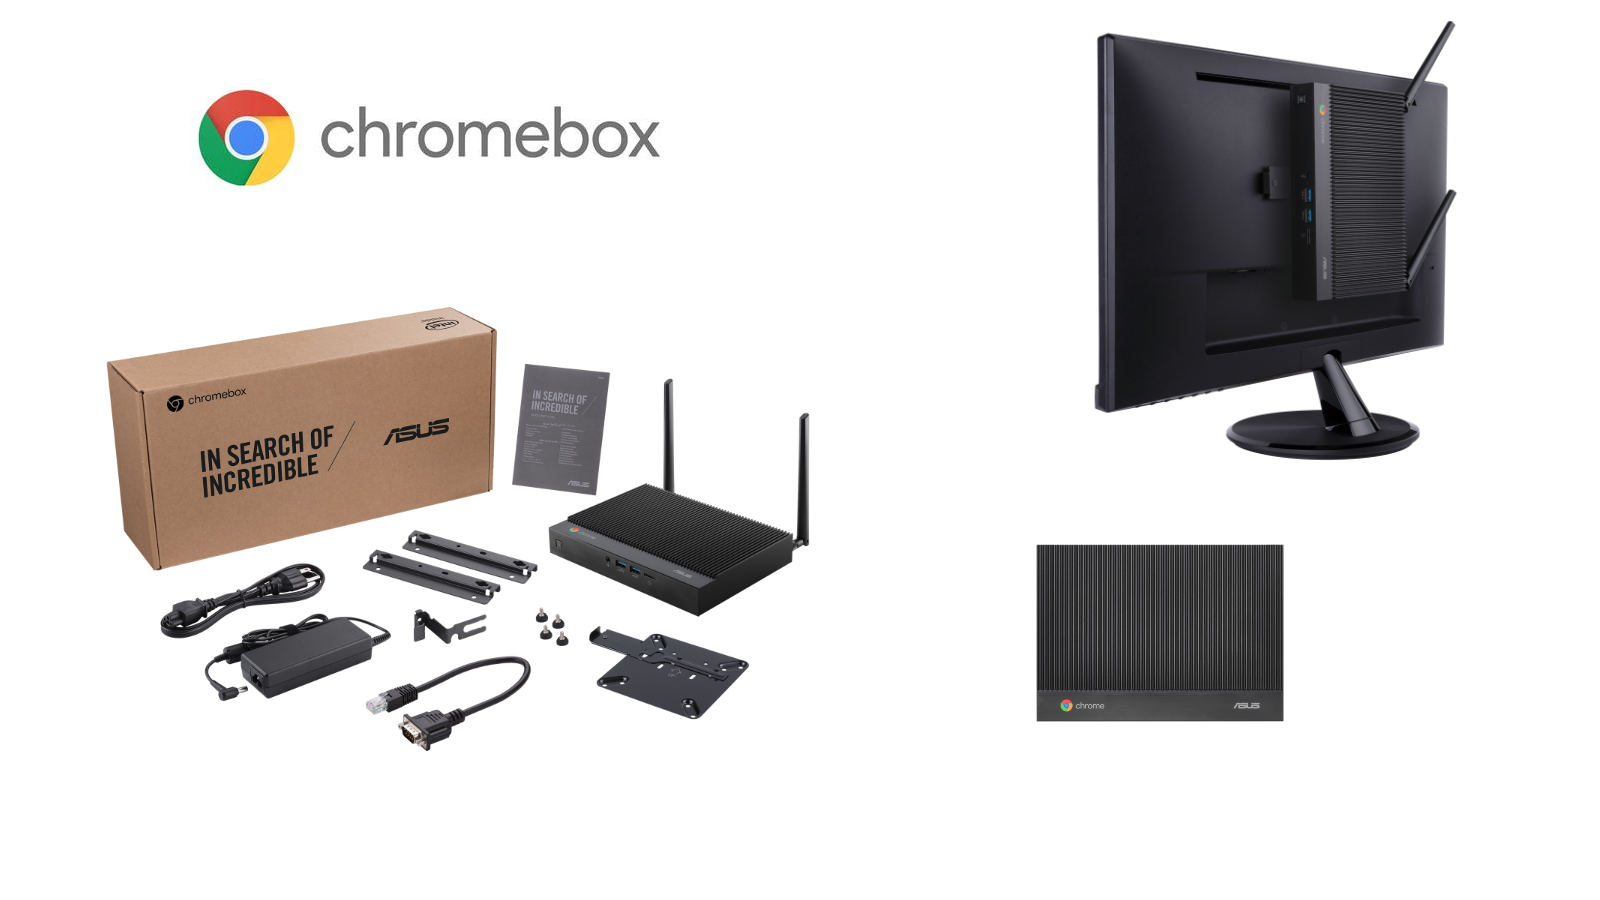 ASUS quietly releases fanless Comet Lake Chromeboxes